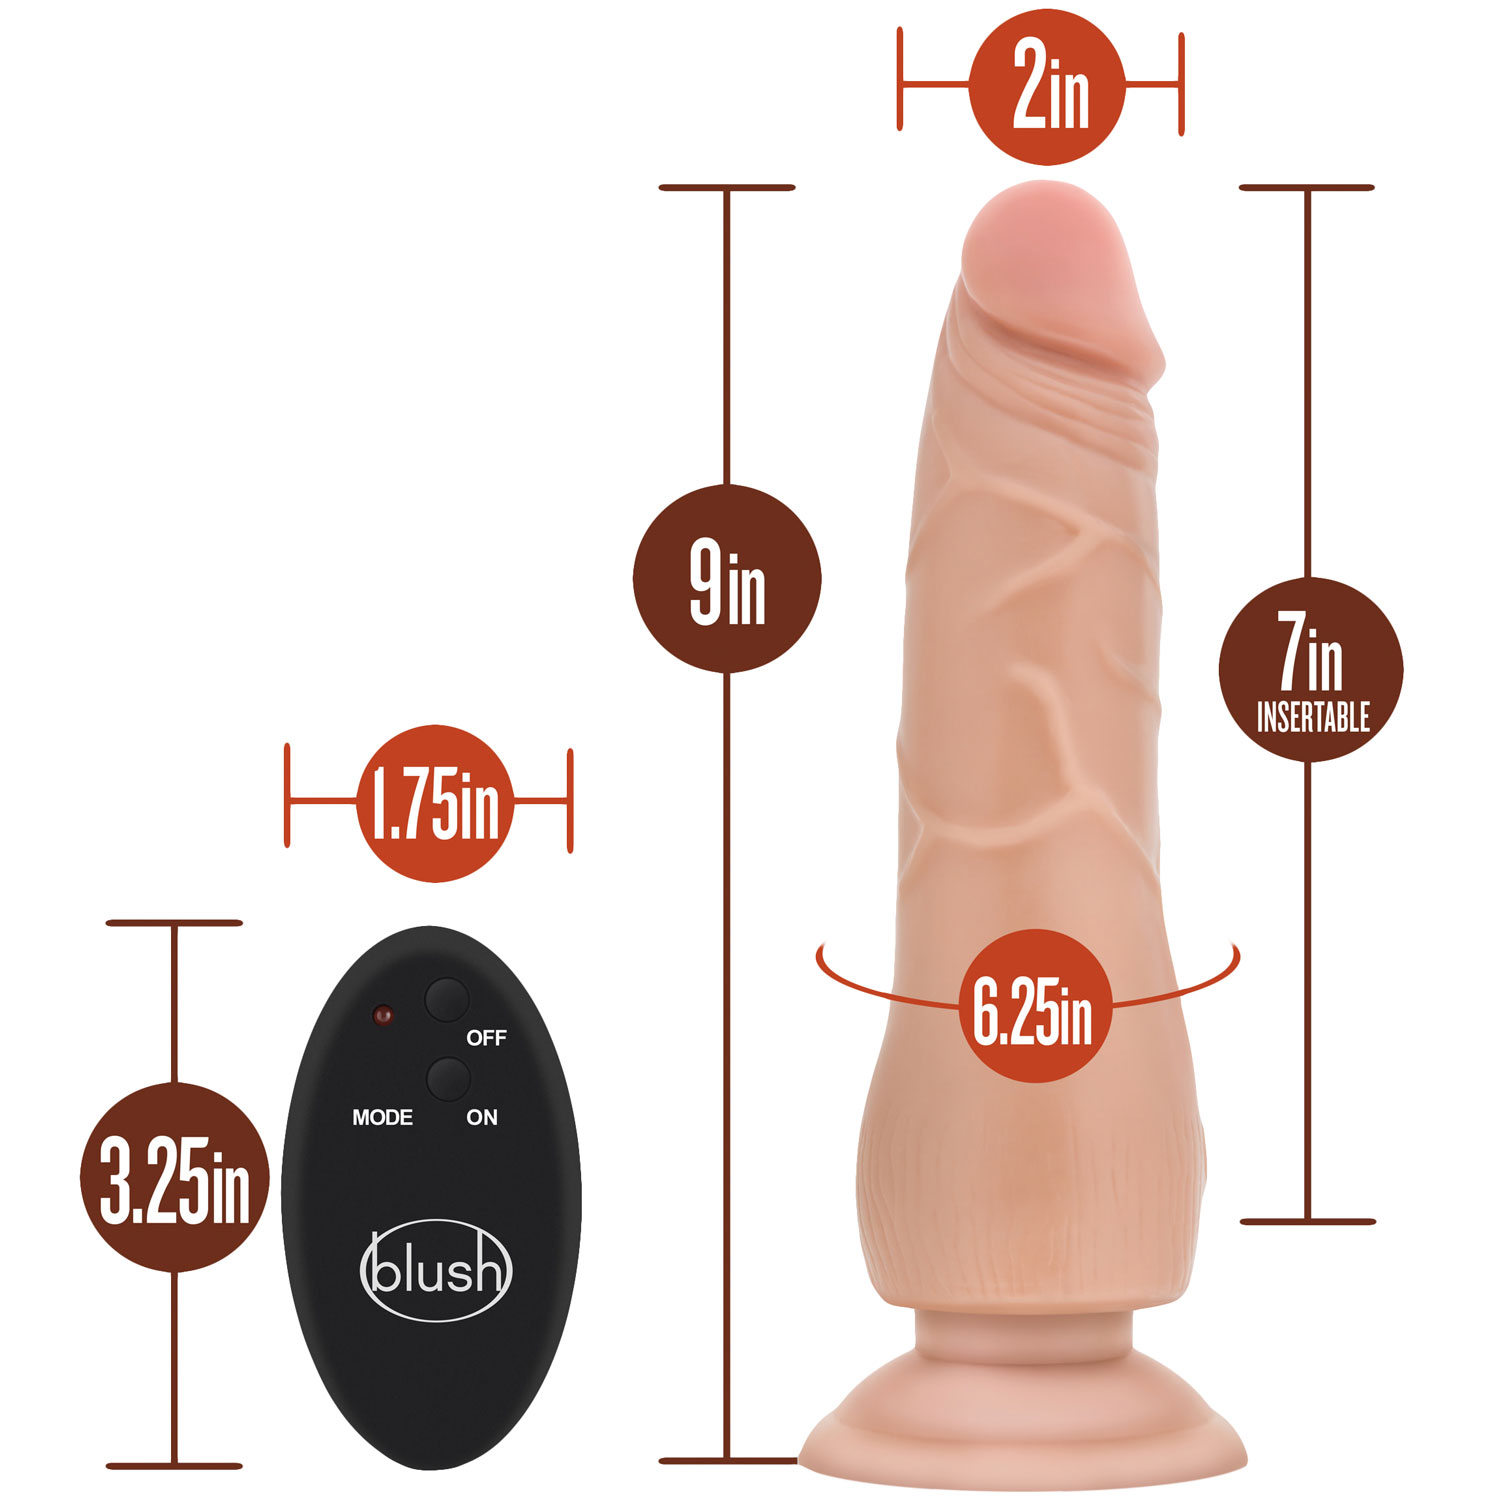 Silicone Willy's 9 Inch 10 Function Wireless Remote Silicone Suction Cup Dildo - Measurements